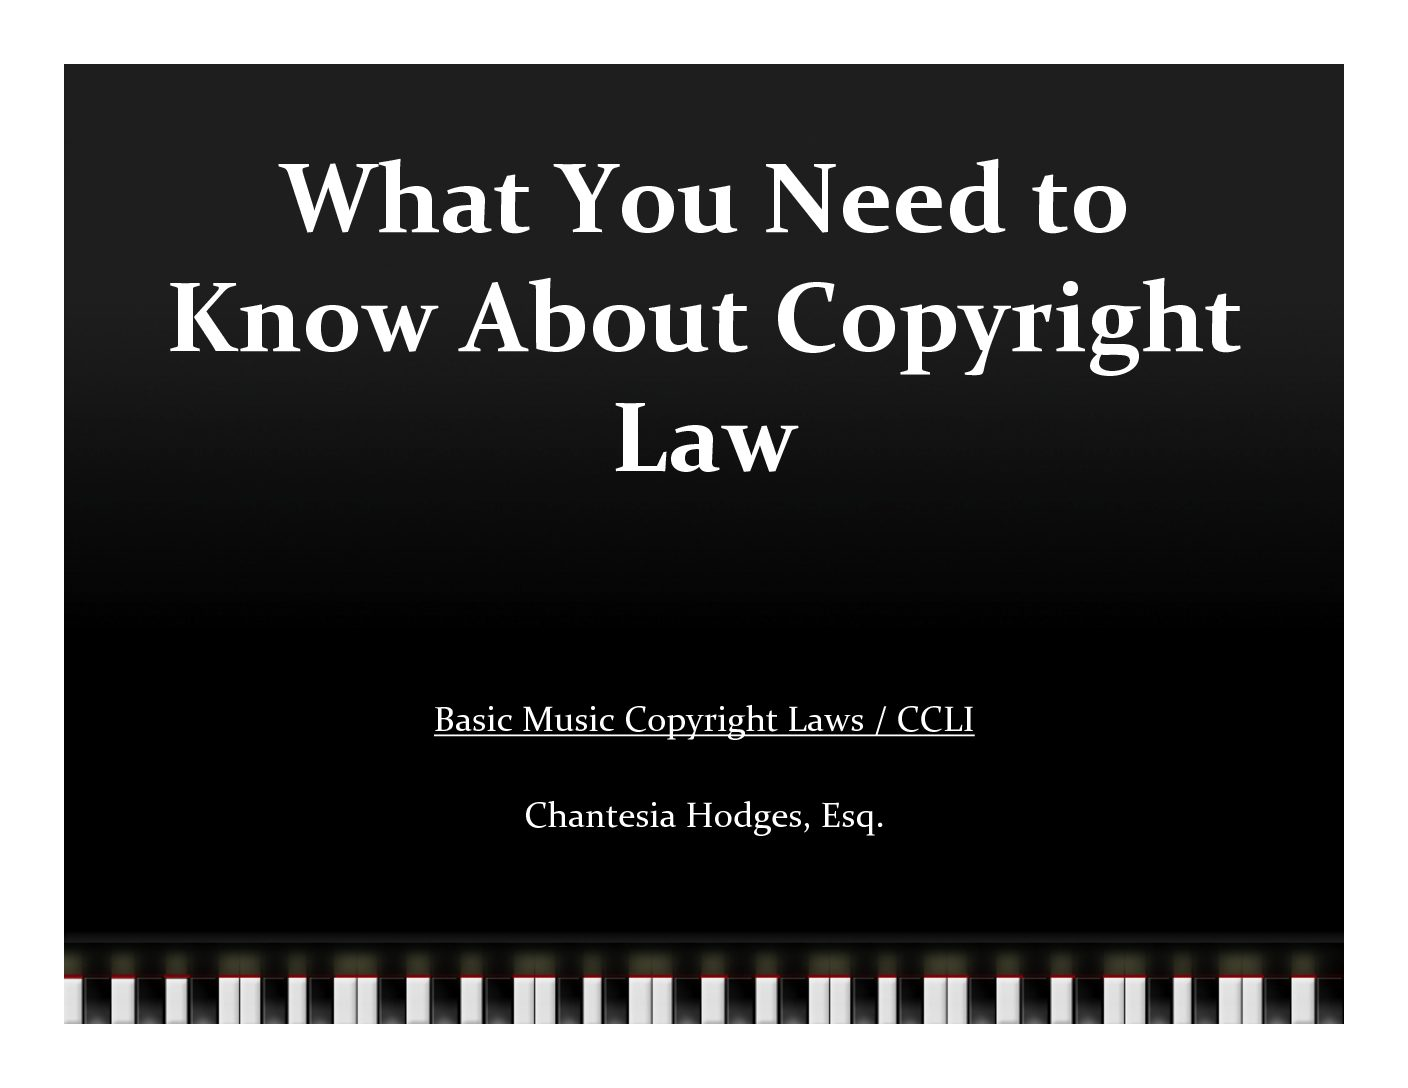 What You Need to Know About Copyright Law